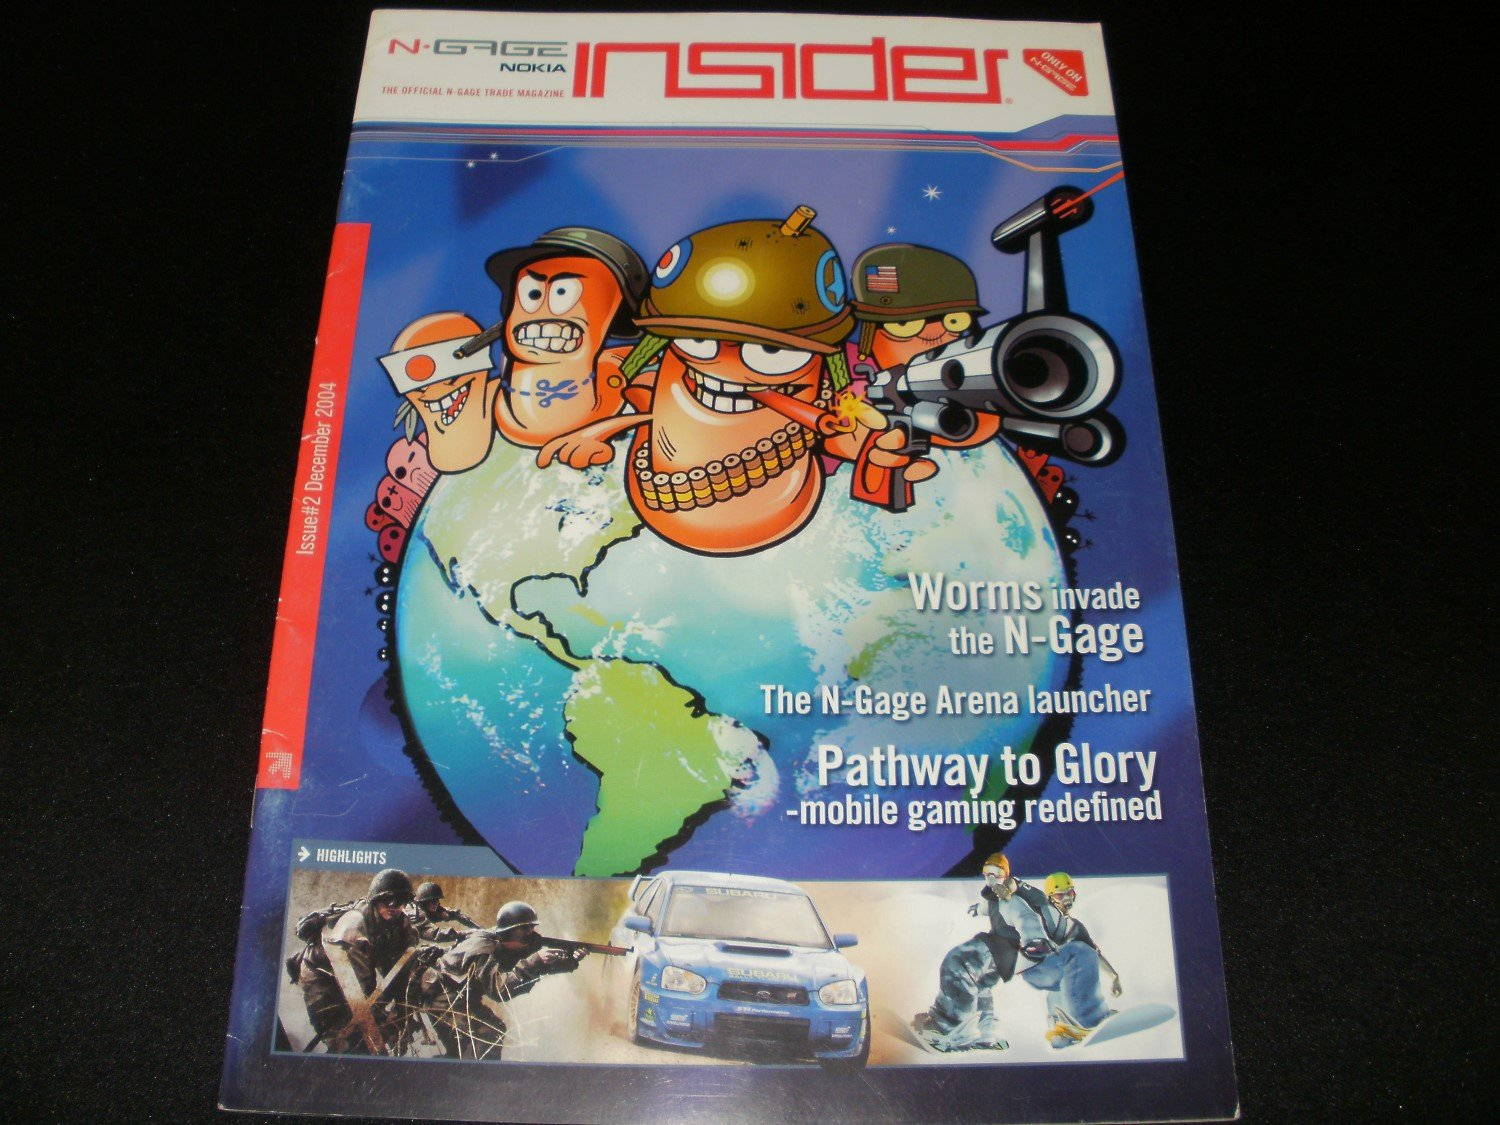 Ngage Insider Magazine - December 2004 - Issue 2